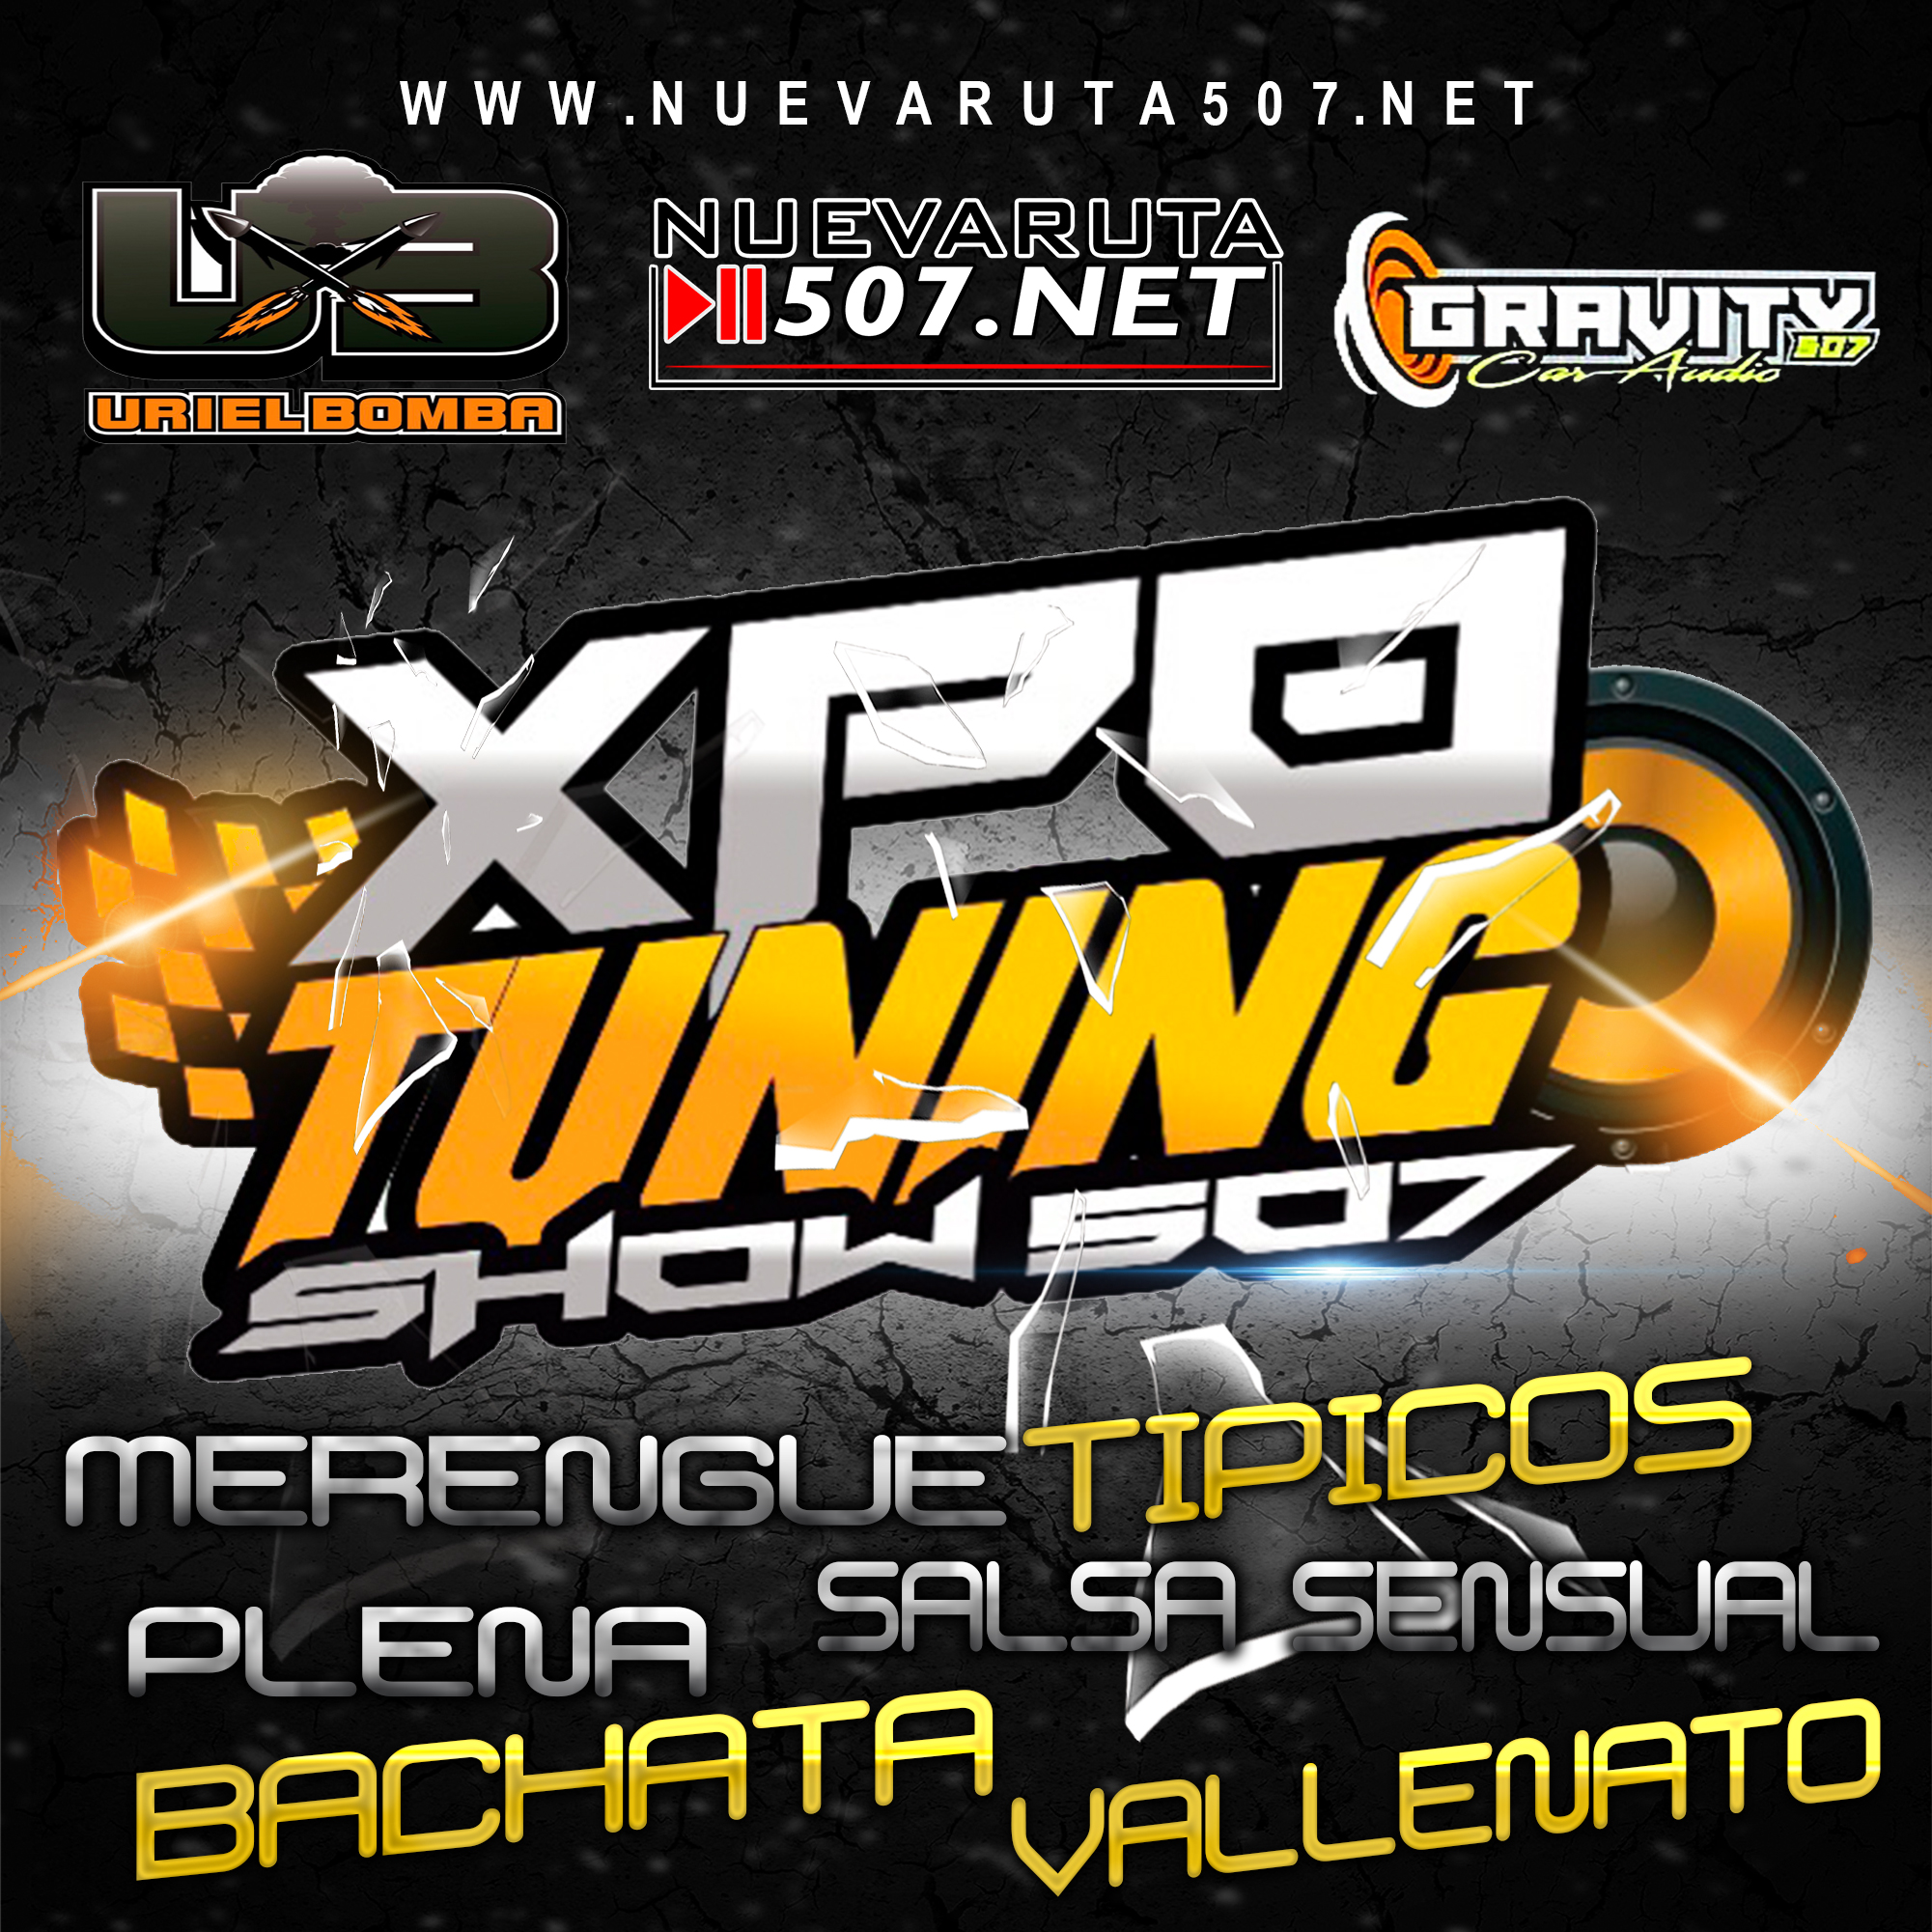 Dj JoseJr - Bachata MIX VL.1 XPO TUNINGSHOW507 .mp3